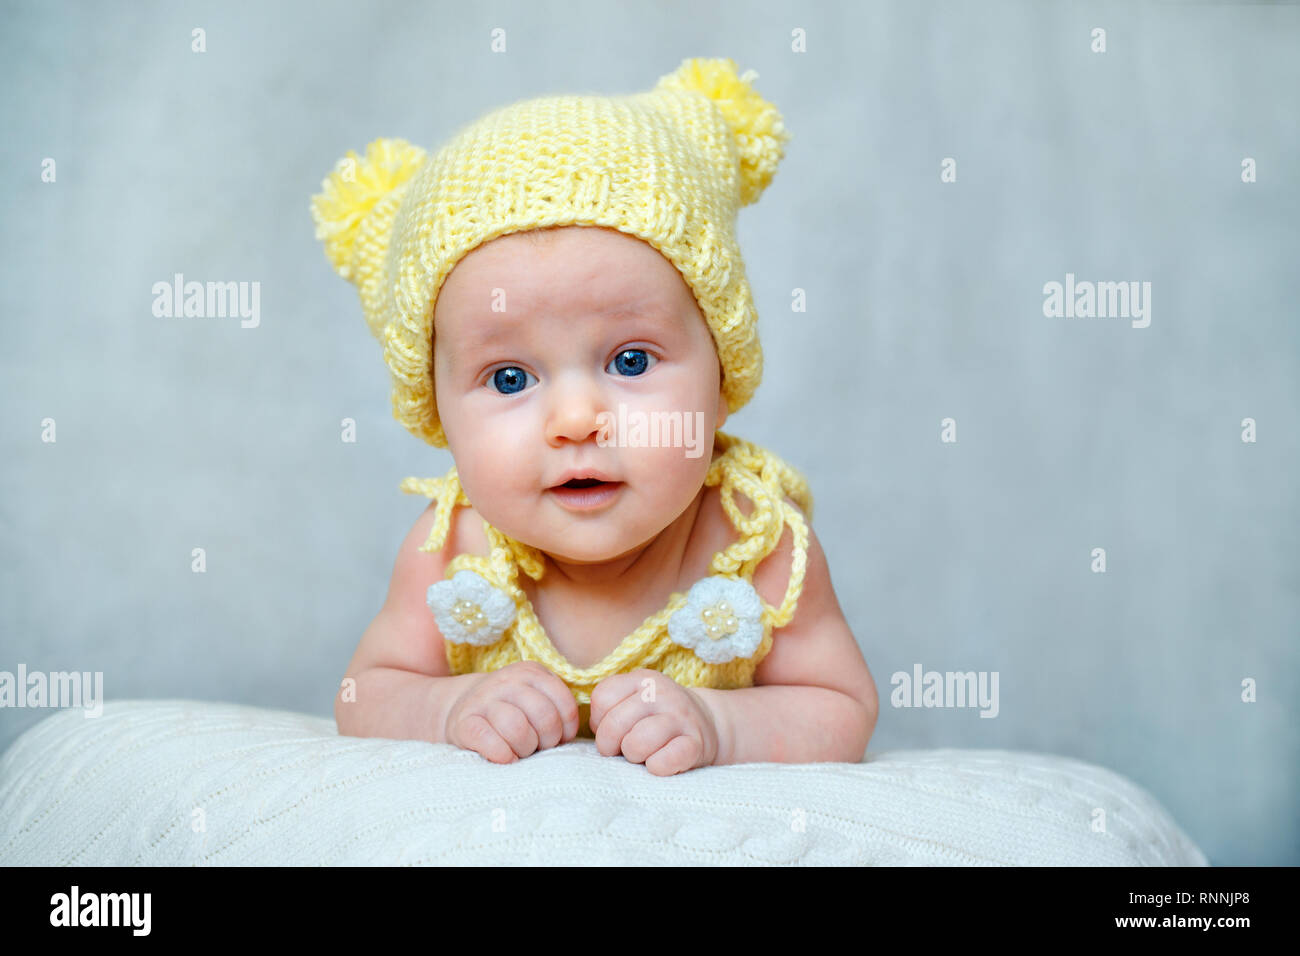 ce5acab52 Portrait of a cute newborn baby girl in yellow knitted hat Stock ...